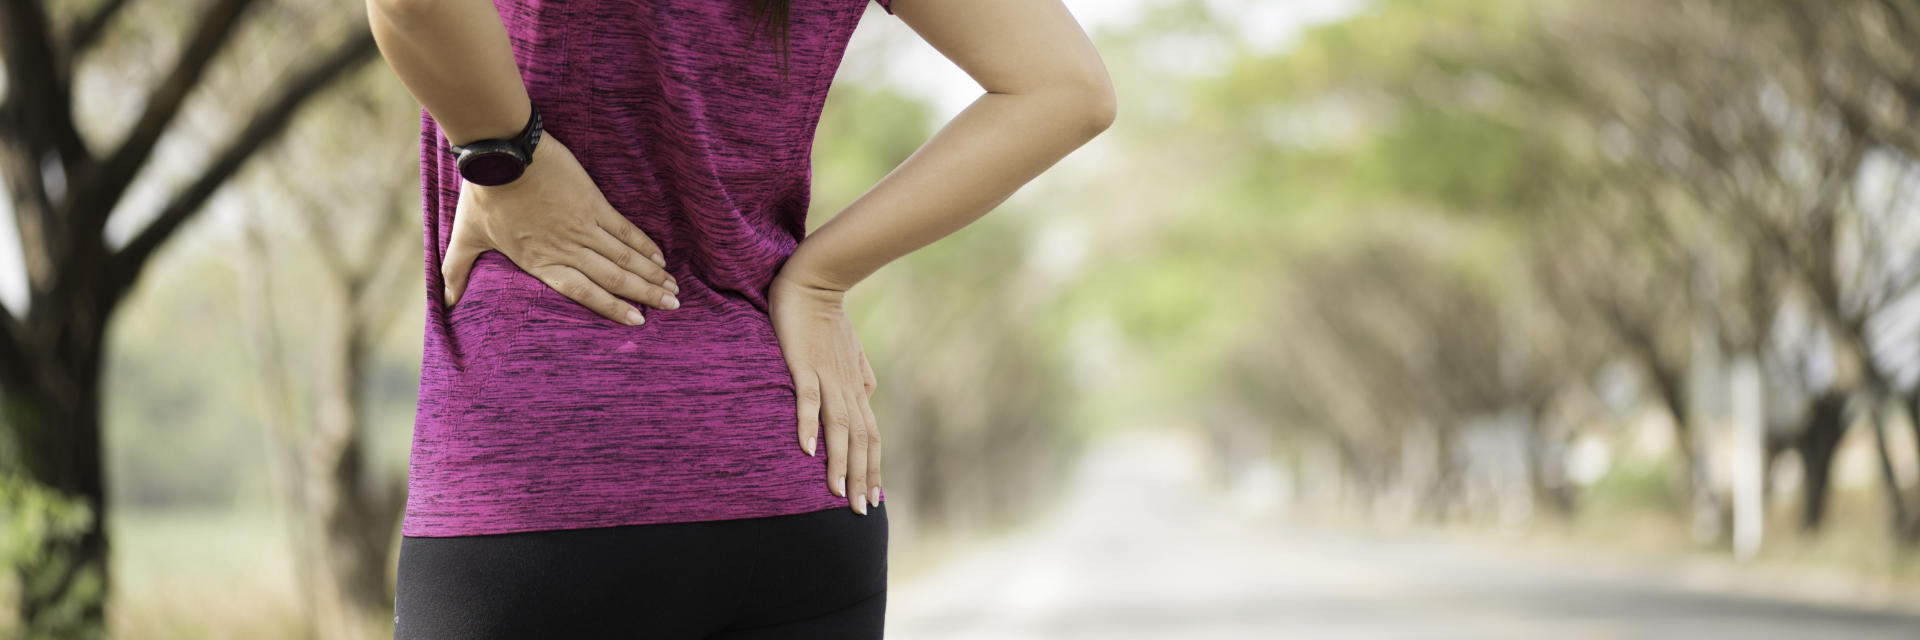 A runner woman with pain in lower back and hip area.